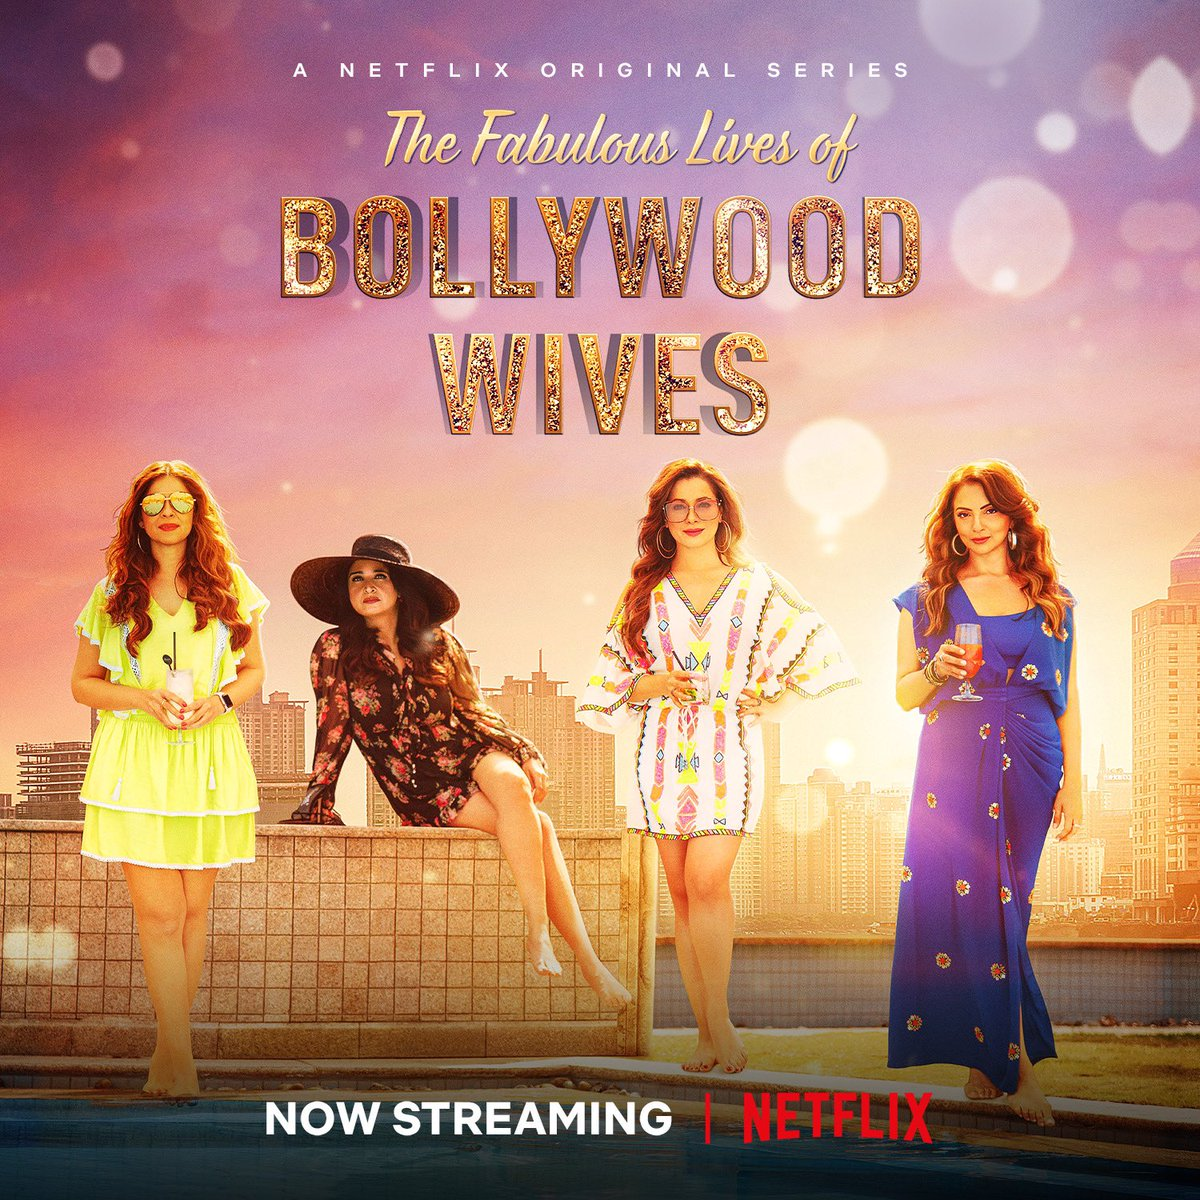 Raise your glasses and get ready to indulge in the #FabulousLives of Bollywood Wives! 🥂 🤩 Now streaming on @NetflixIndia   @maheepkapoor @neelamkothari @seemakkhan @bhavanapandey @apoorvamehta18 @aneeshabaig @scrappypants #UttamDomale